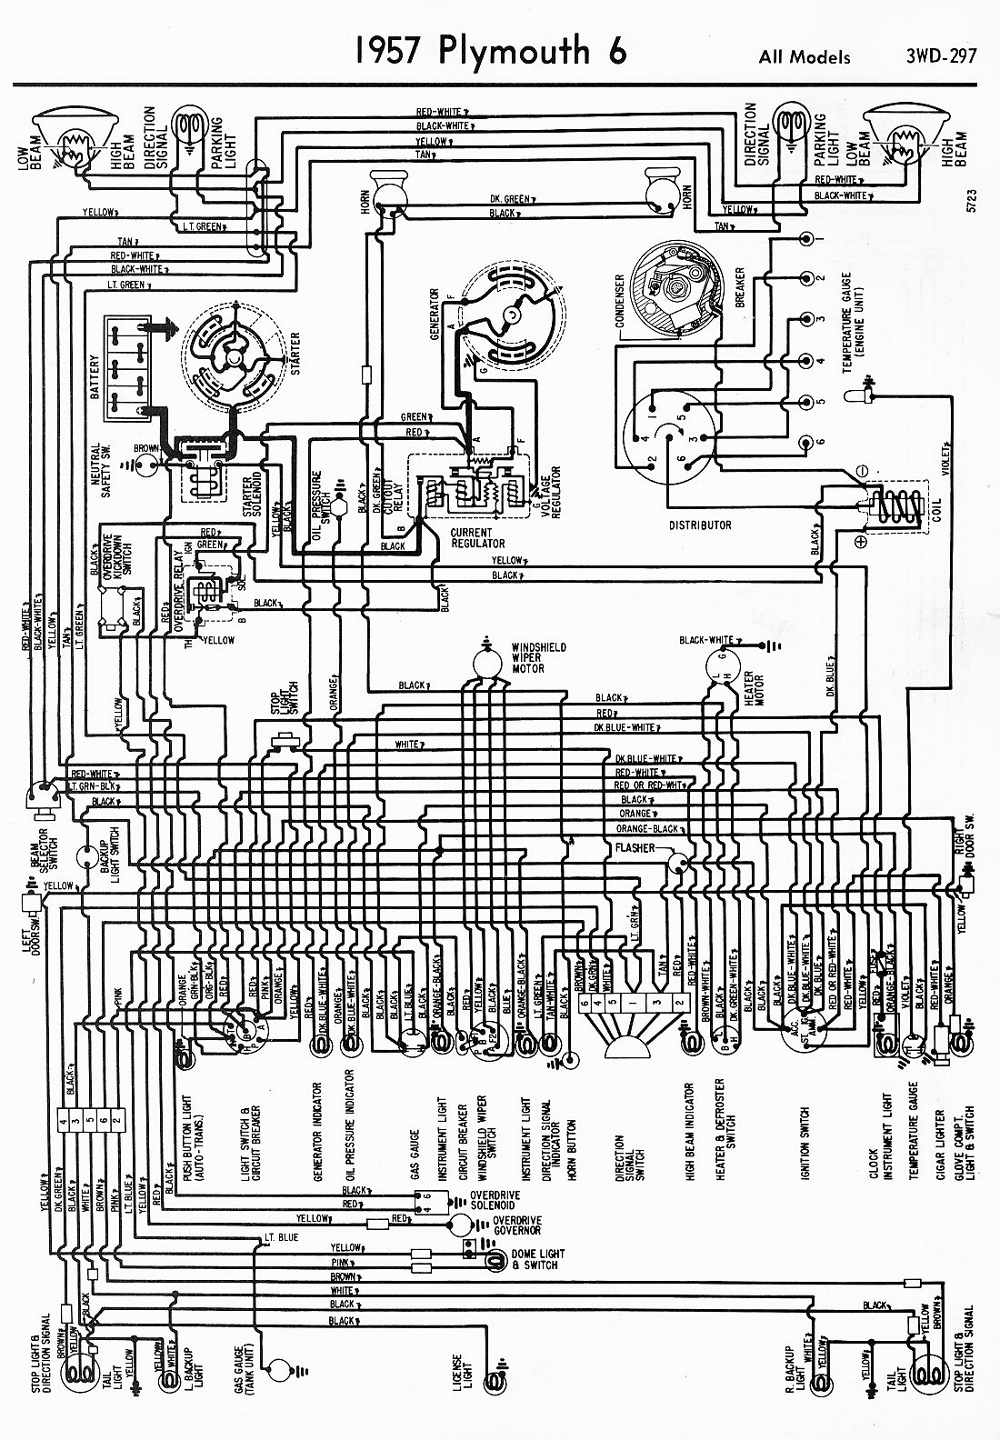 1949 Plymouth Wiring Diagram - Wiring Diagrams on